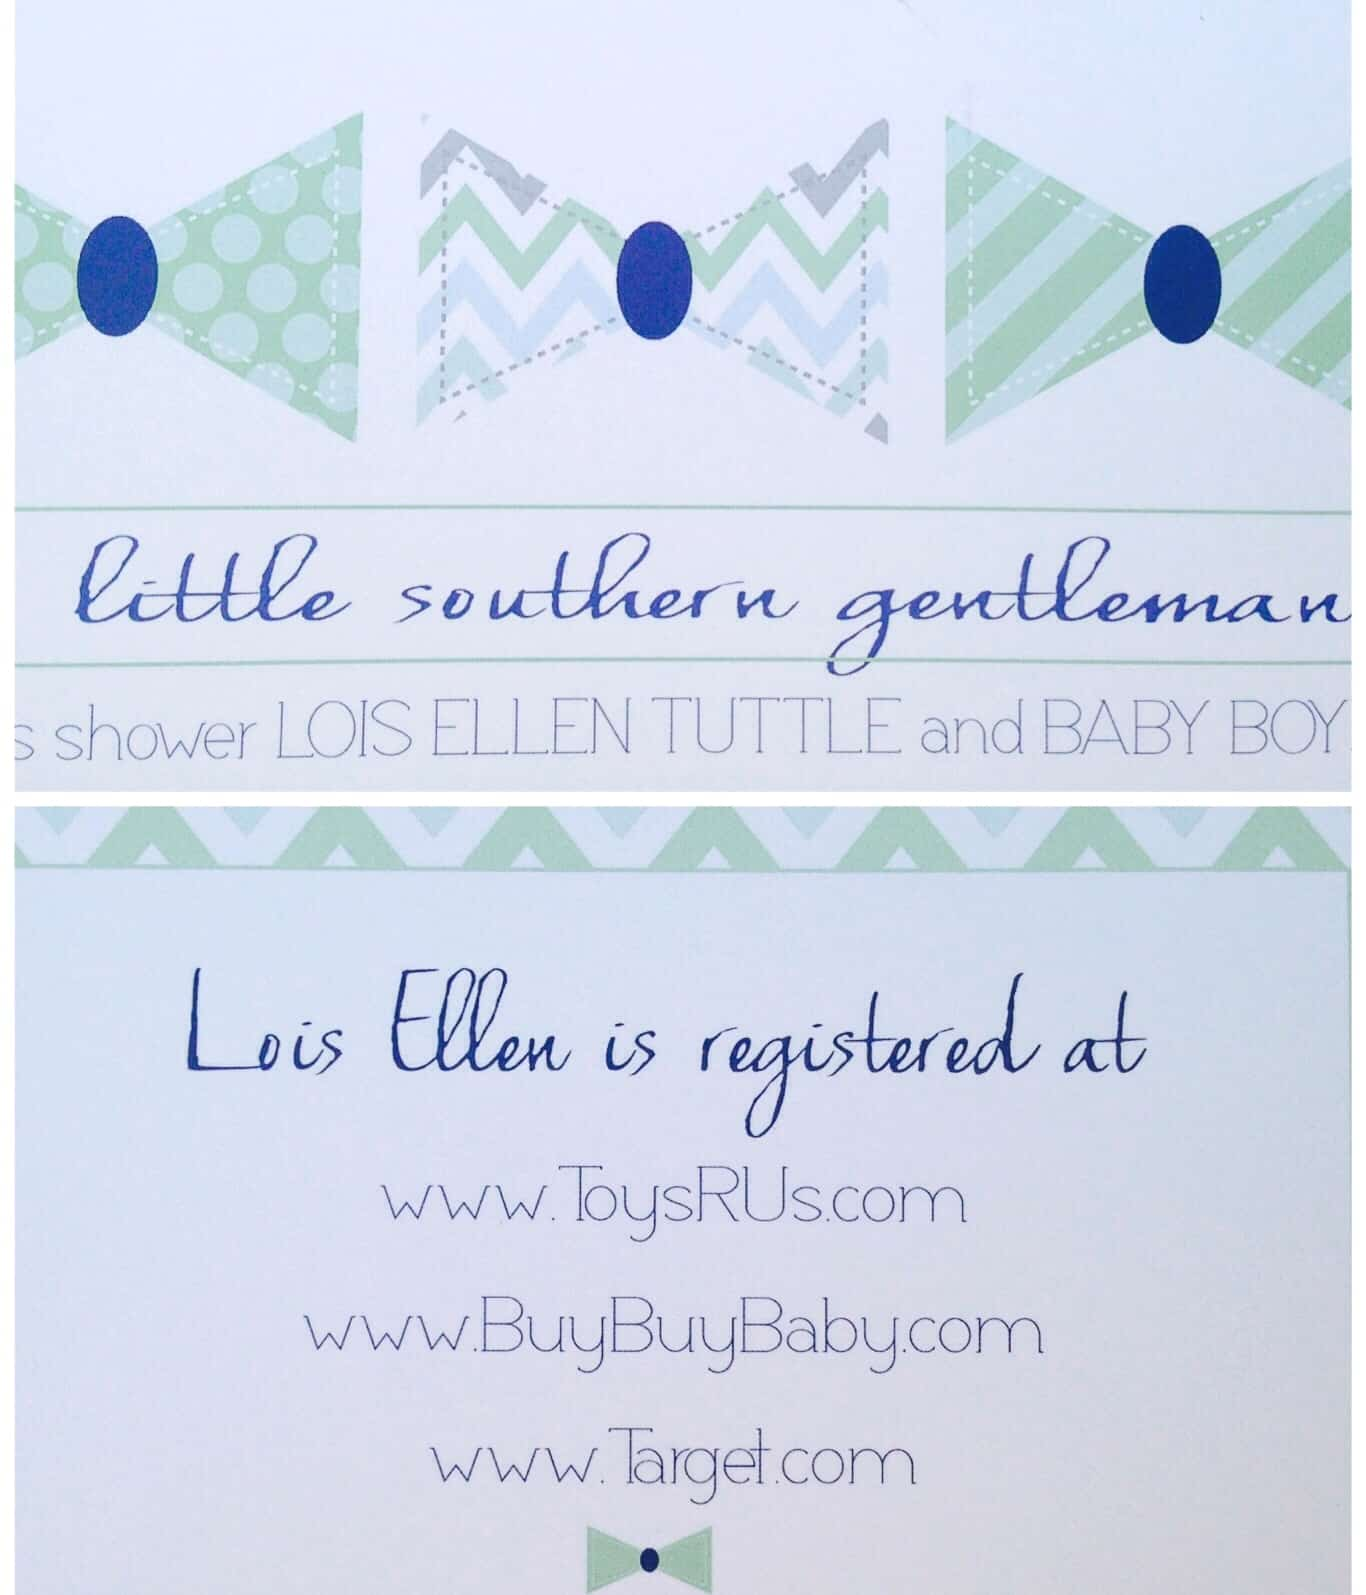 A DIY Baby Shower A Southern Gentleman Simple Stylings